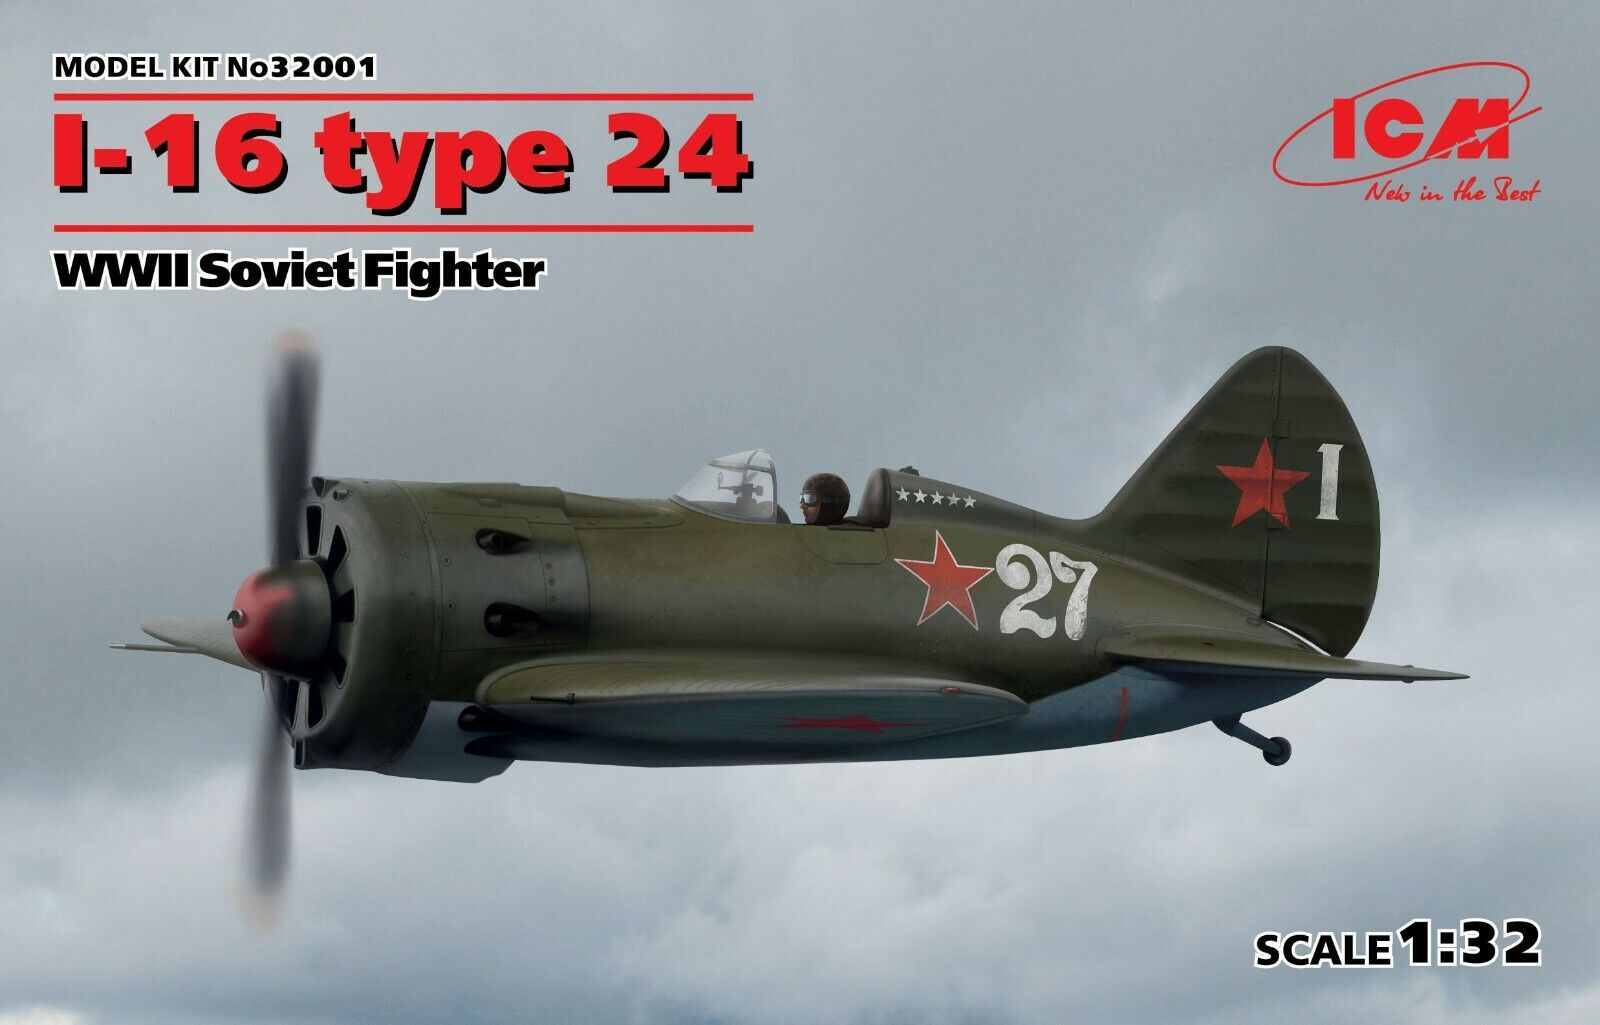 ICM 32001 I-16 type 24, WWII Soviet Fighter 1 32 scale model kit 191 mm